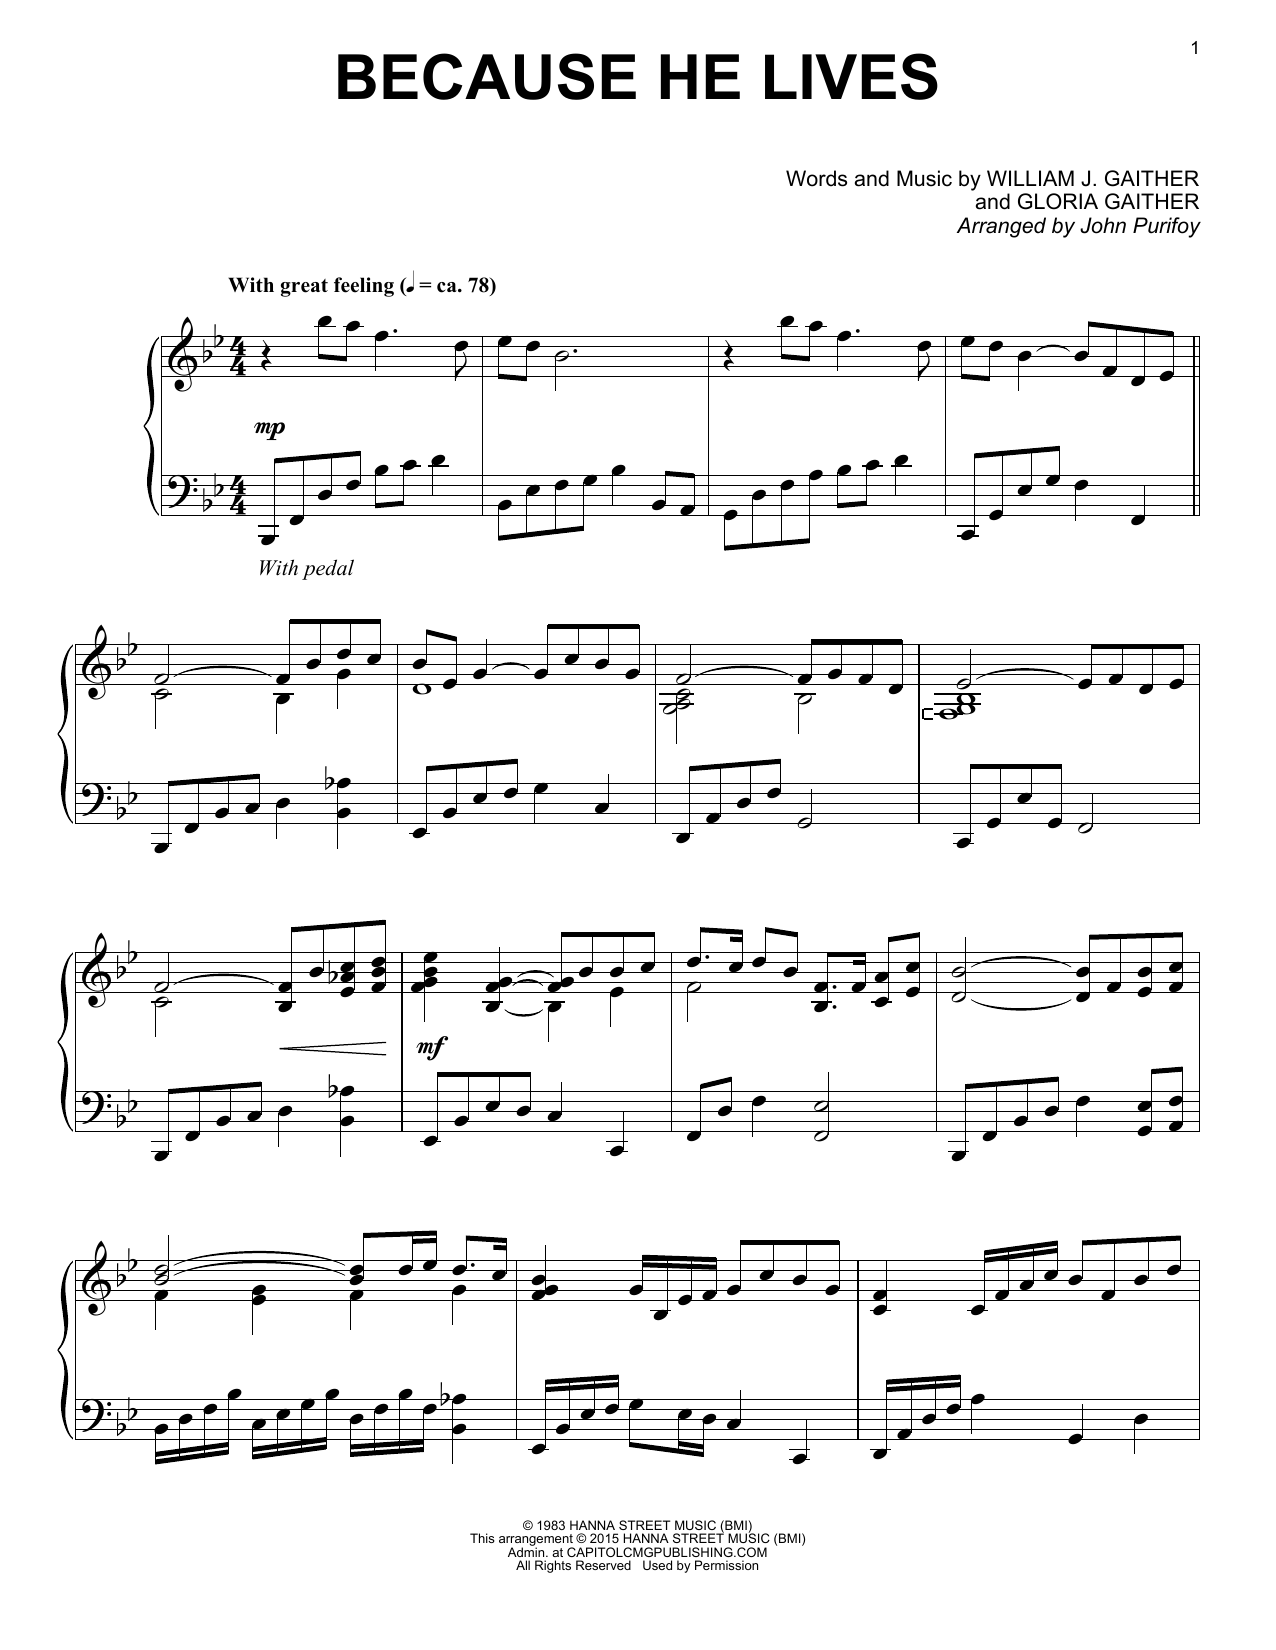 Gaither Vocal Band Because He Lives sheet music notes and chords. Download Printable PDF.